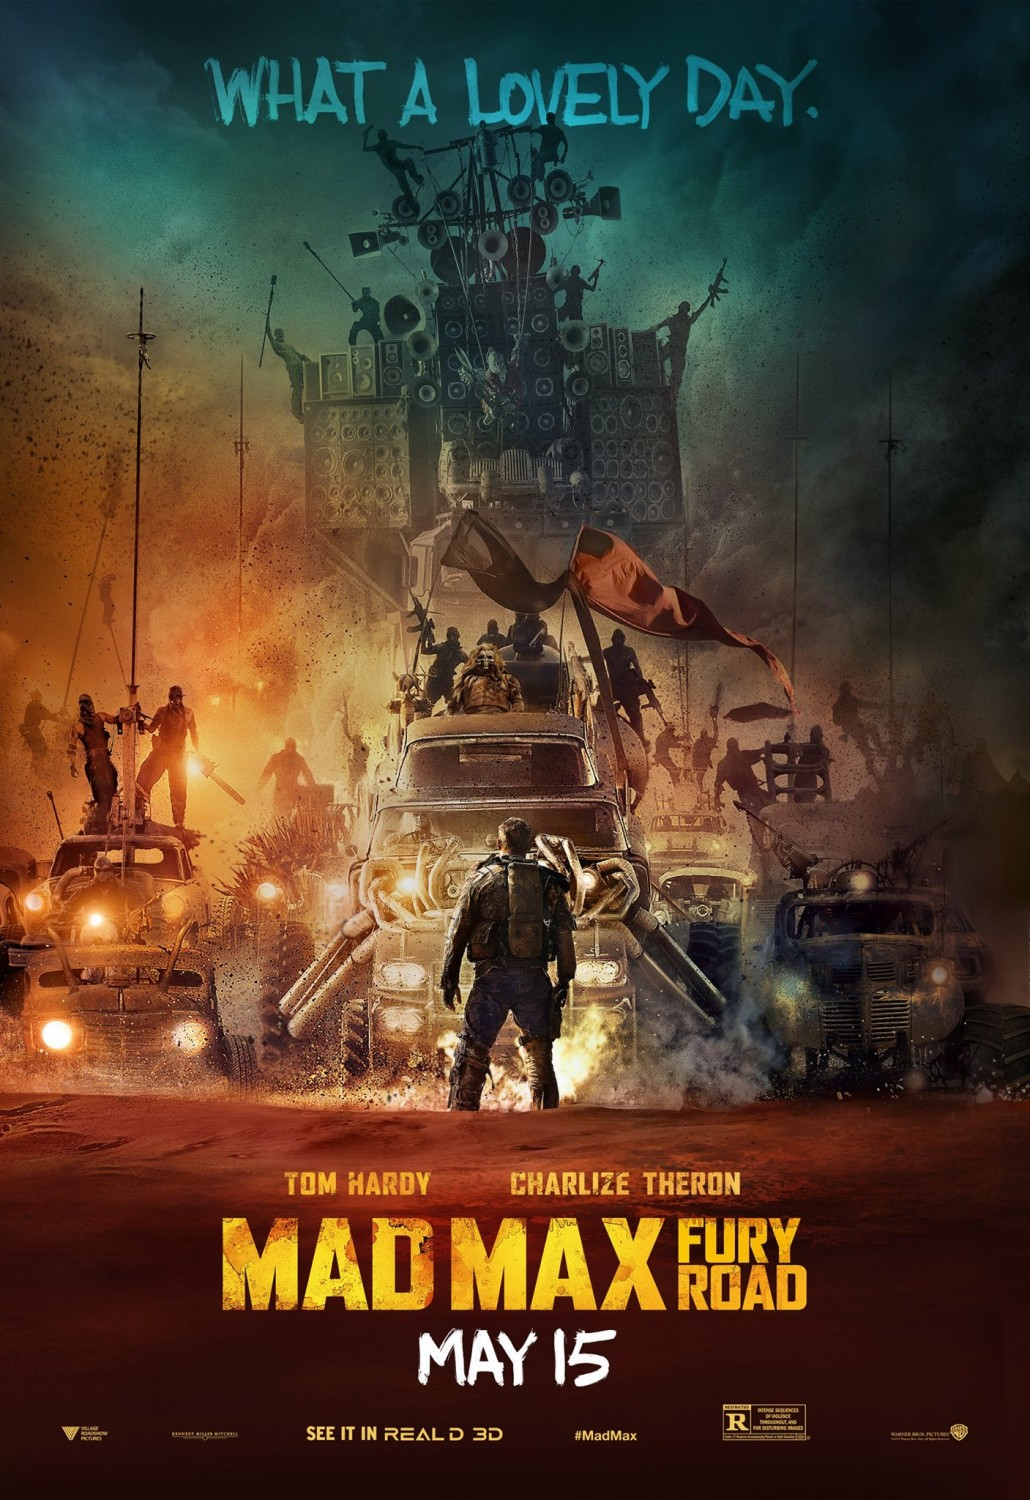 Polster Max Fury Road Sequel To Be Titled Mad Max The Wasteland